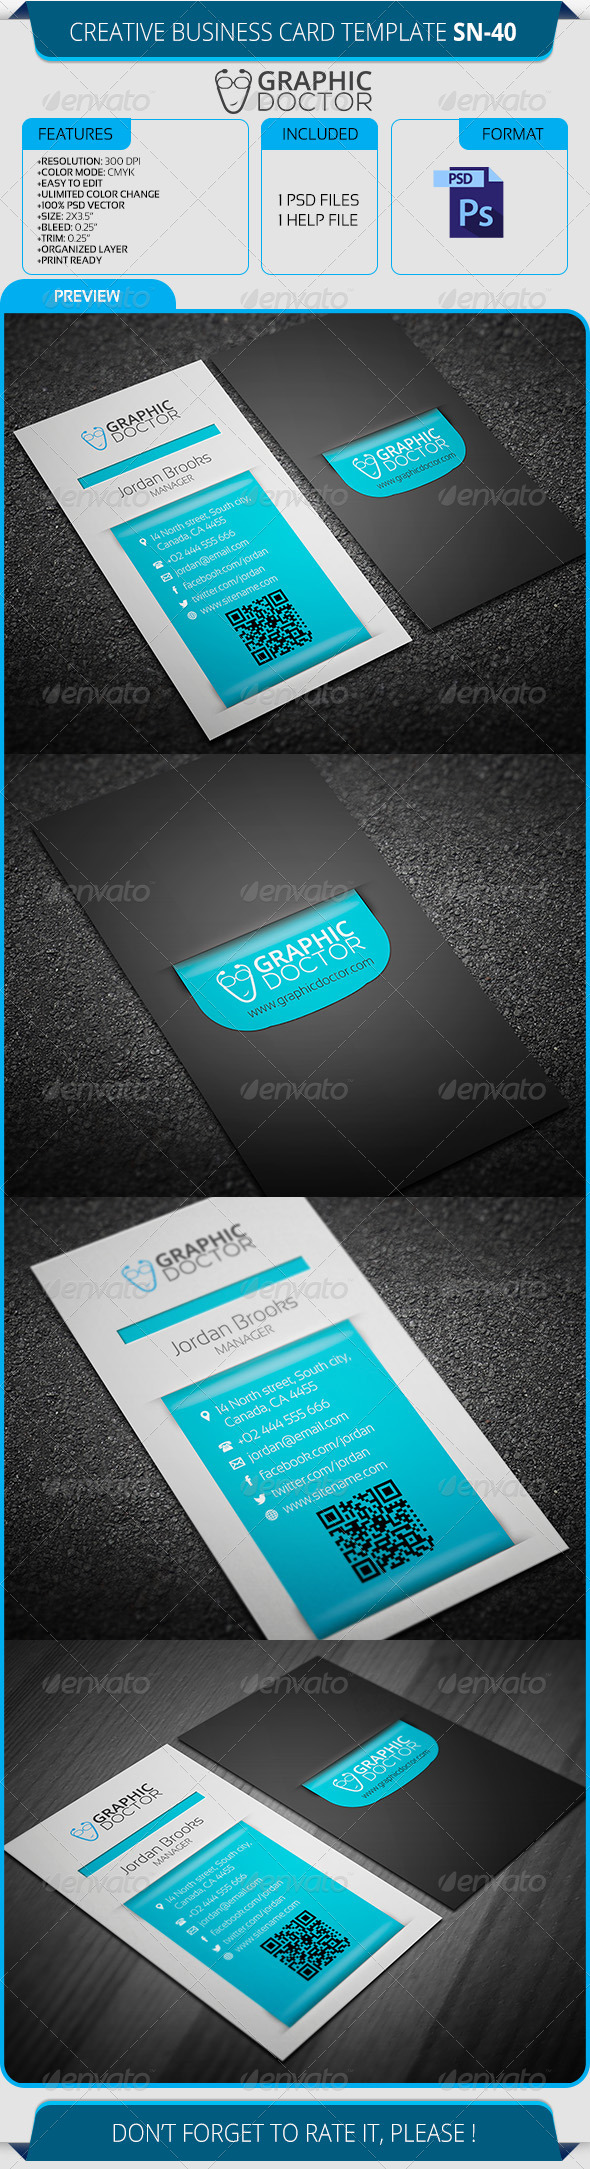 GraphicRiver Creative Business Card Template SN-40 8712617